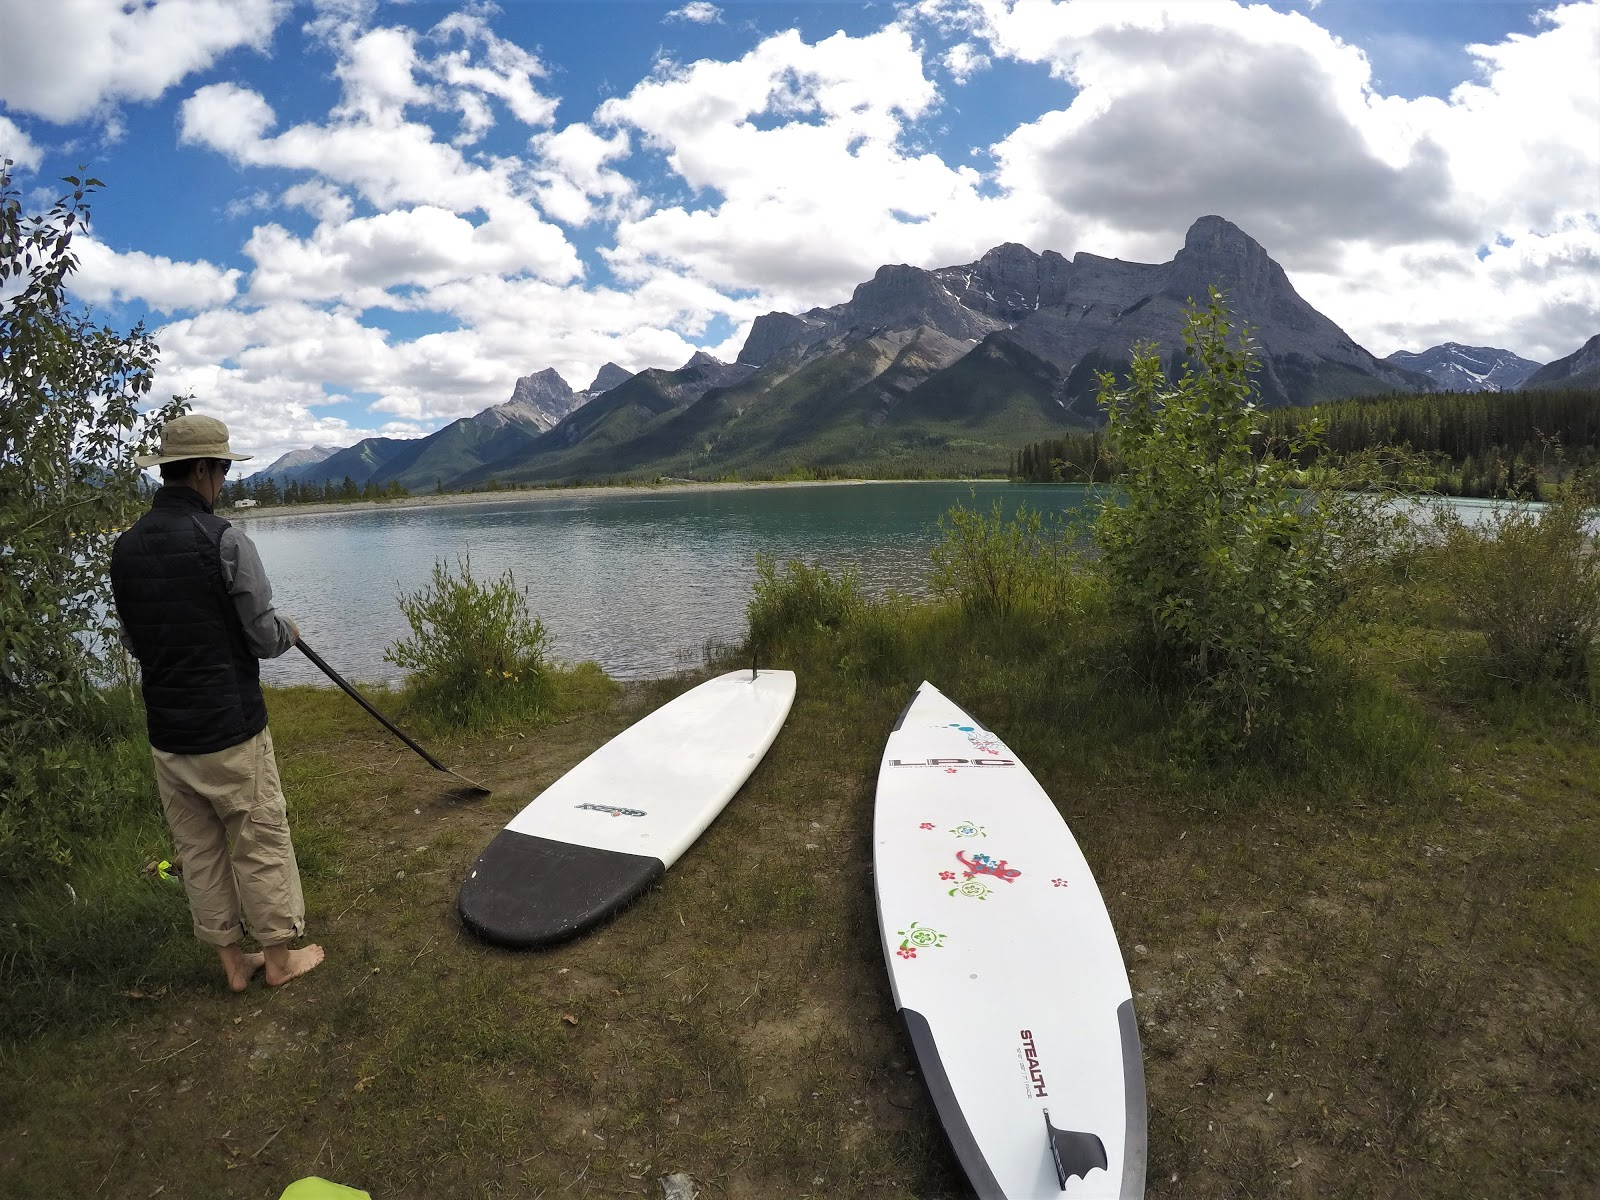 Rundle Forebay stand up paddleboarding, Canmore